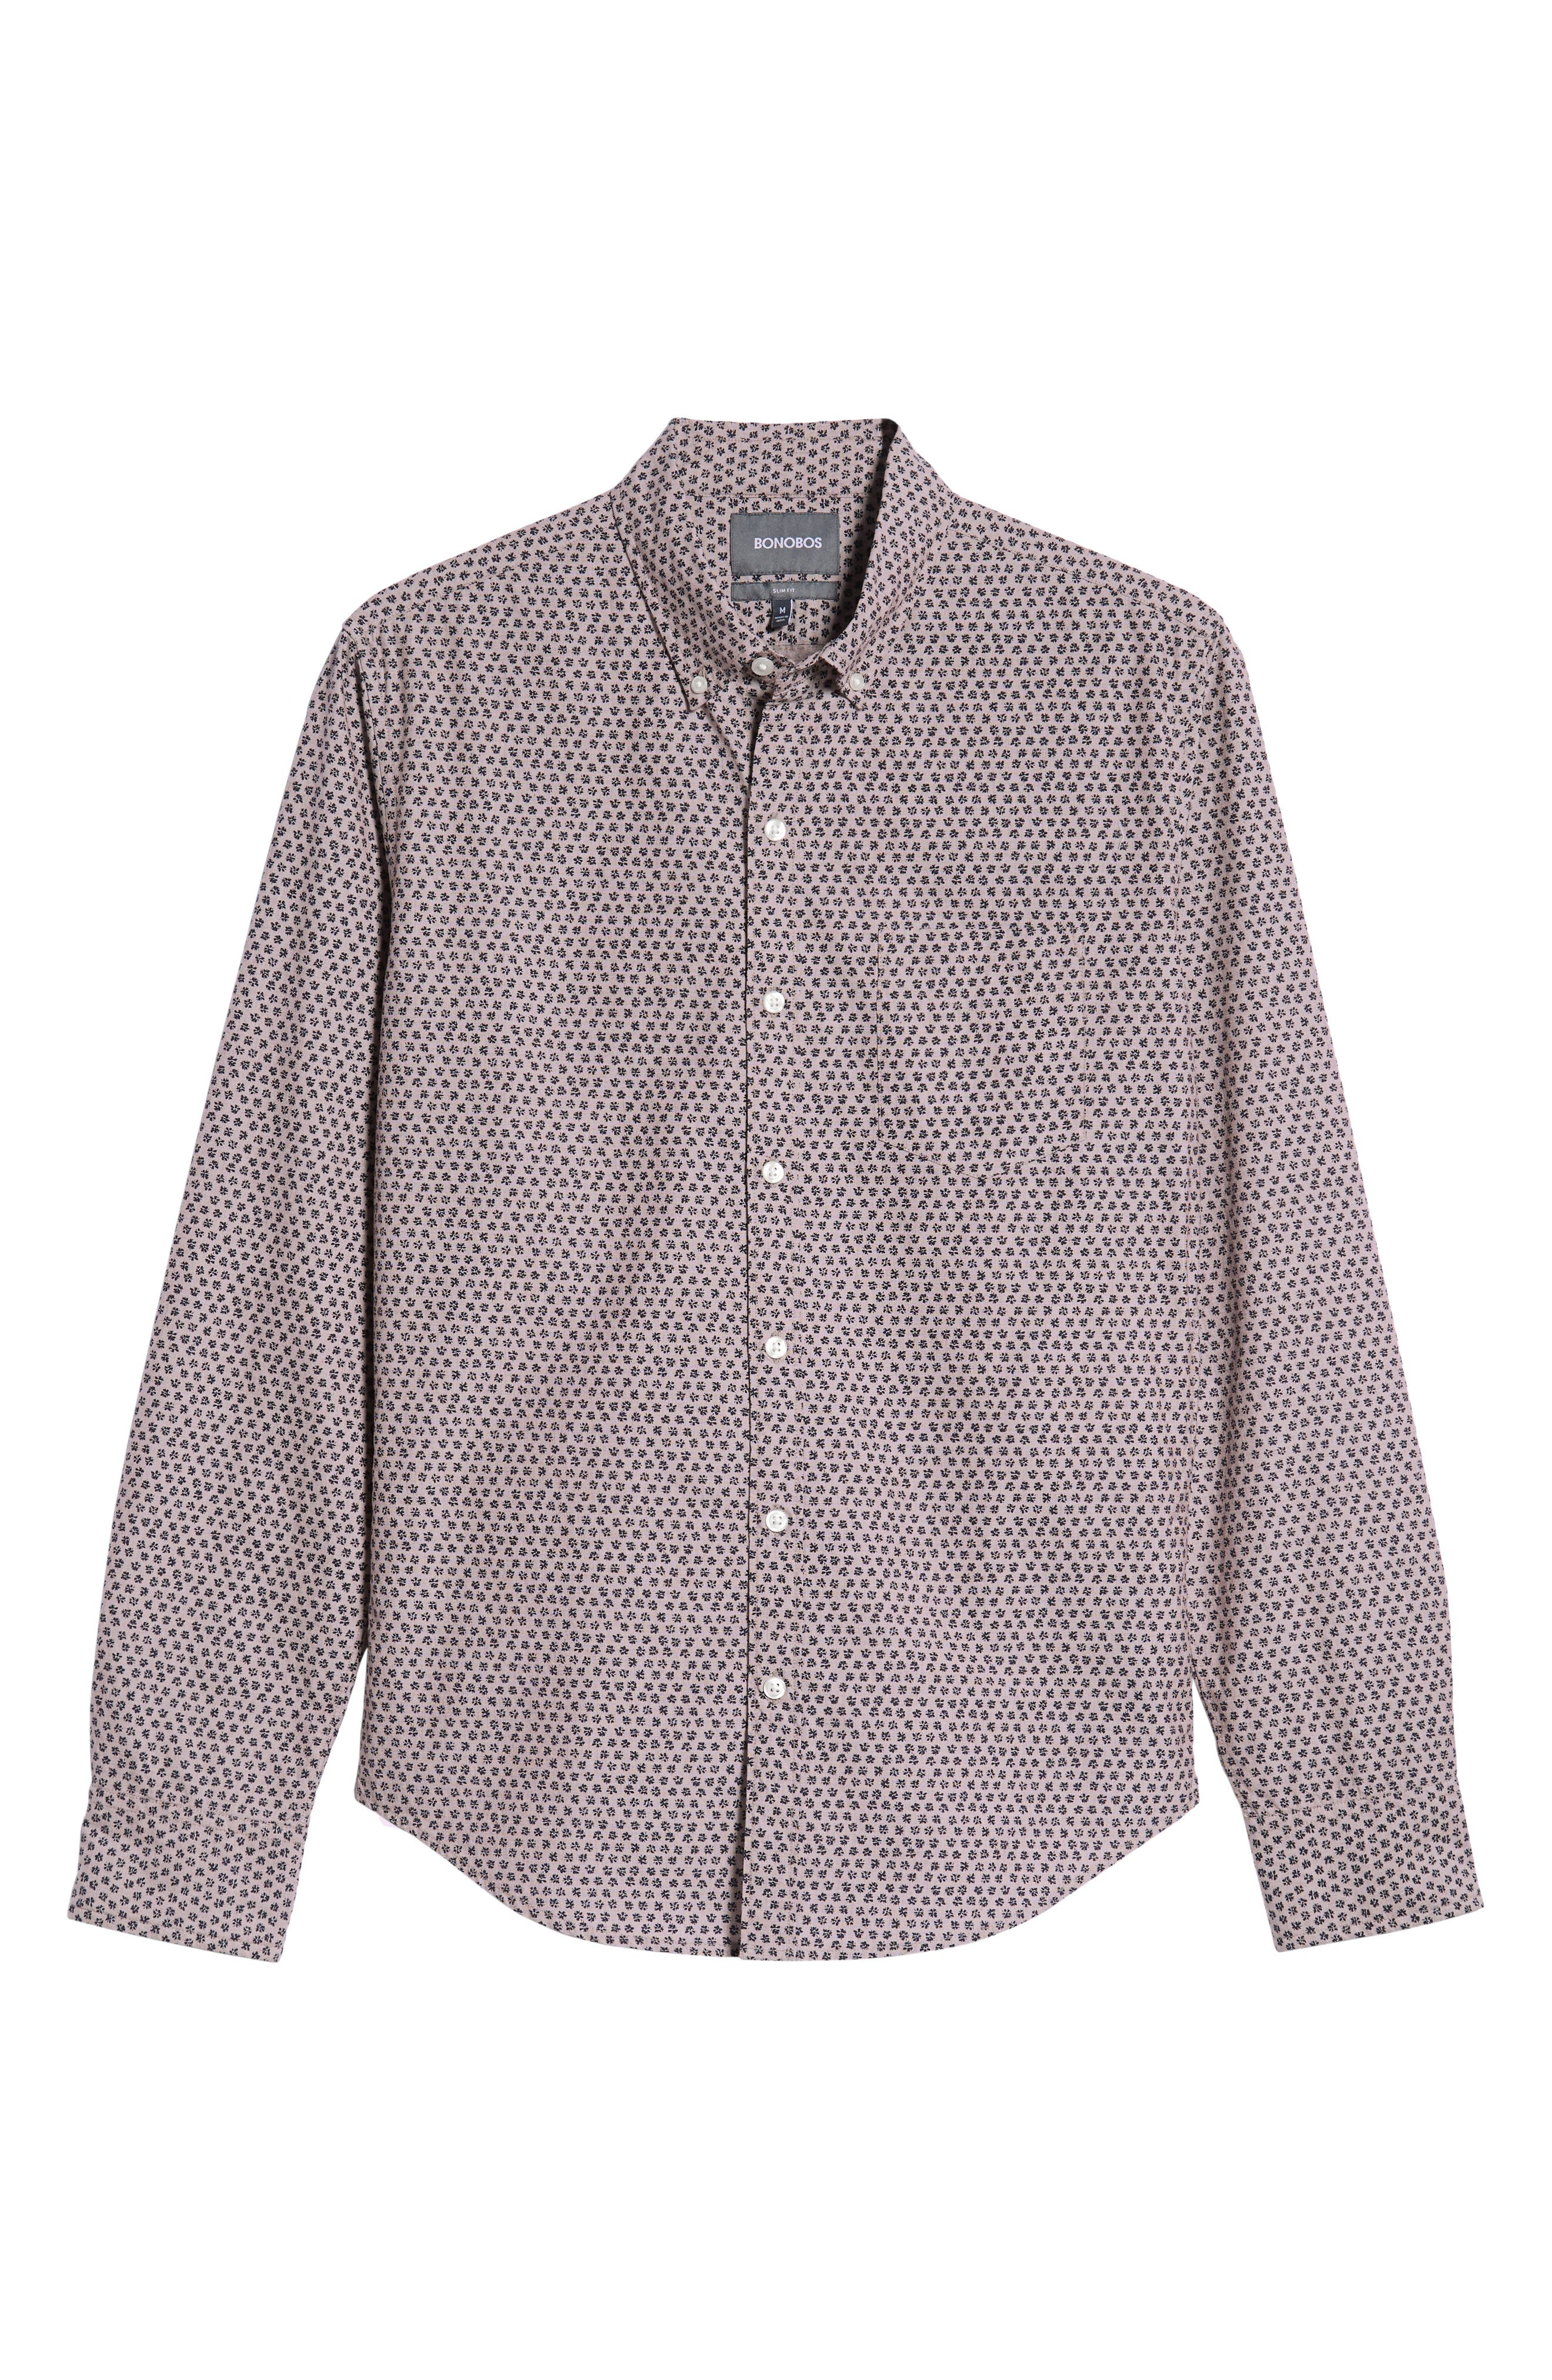 Washed Button Down Slim Fit Print Sport Shirt,                             Alternate thumbnail 6, color,                             HIGHLAND FLORAL - BEAR BERRY